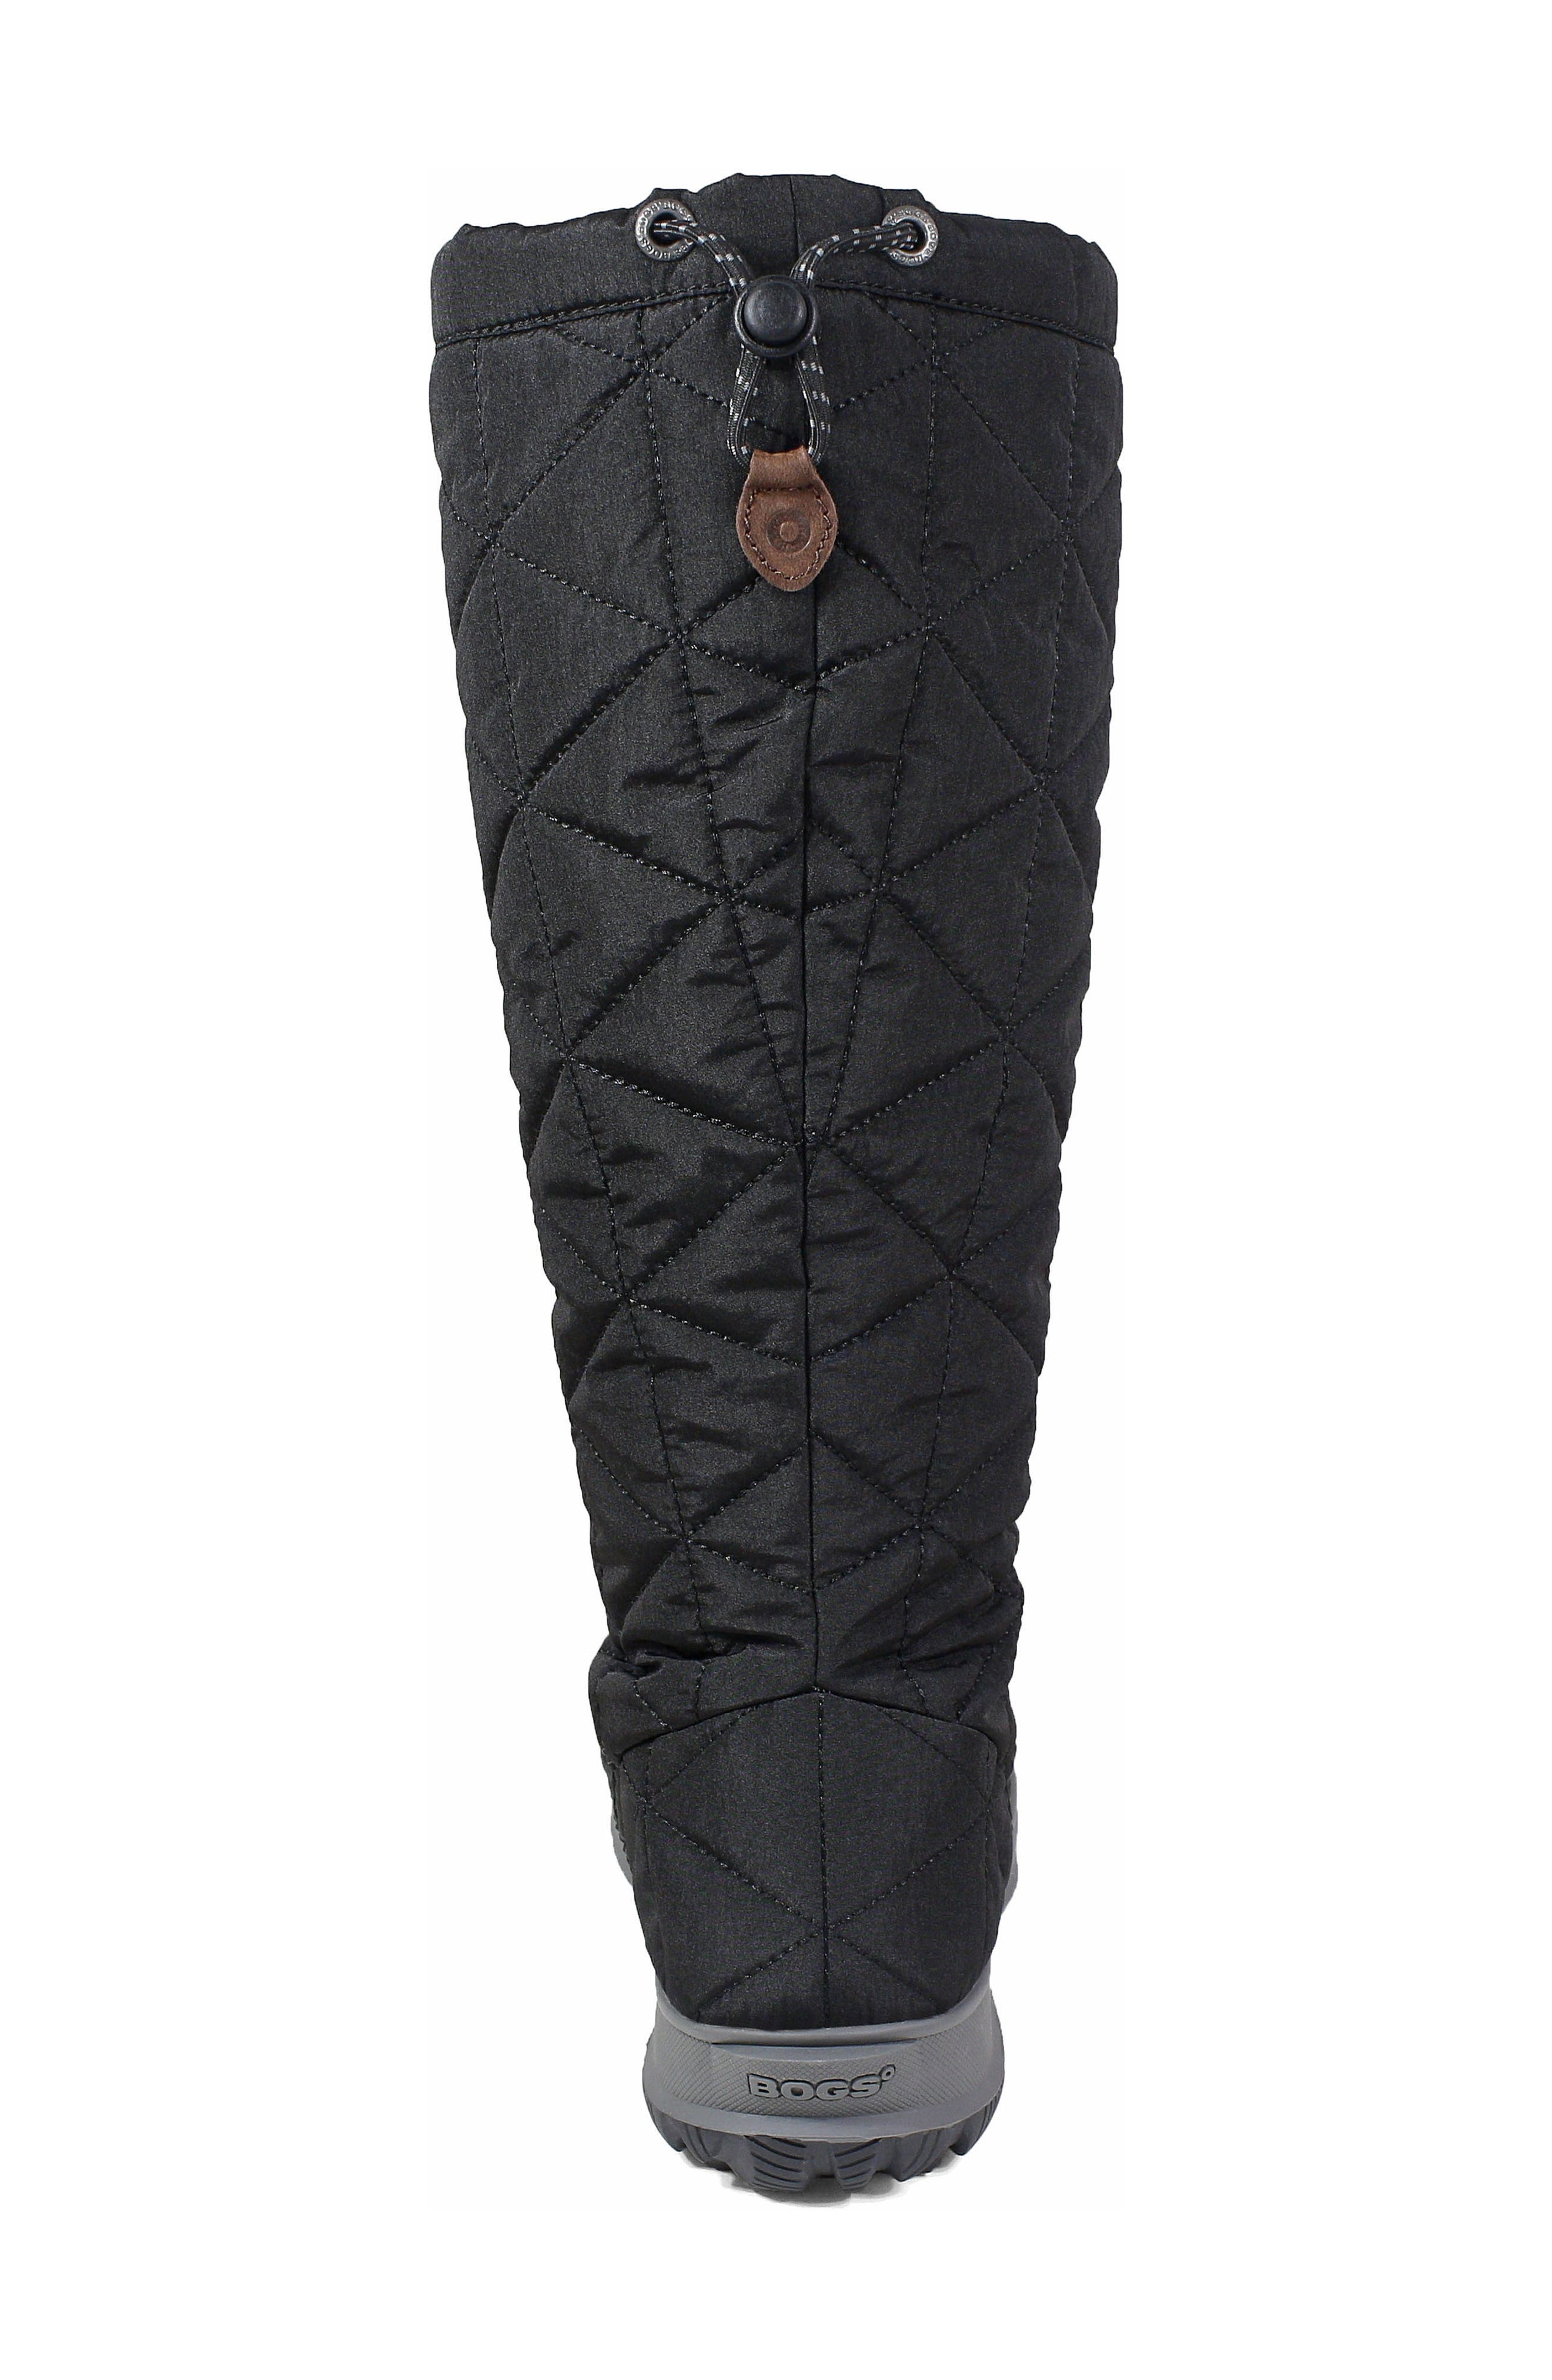 BOGS, Snowday Tall Waterproof Quilted Snow Boot, Alternate thumbnail 8, color, BLACK